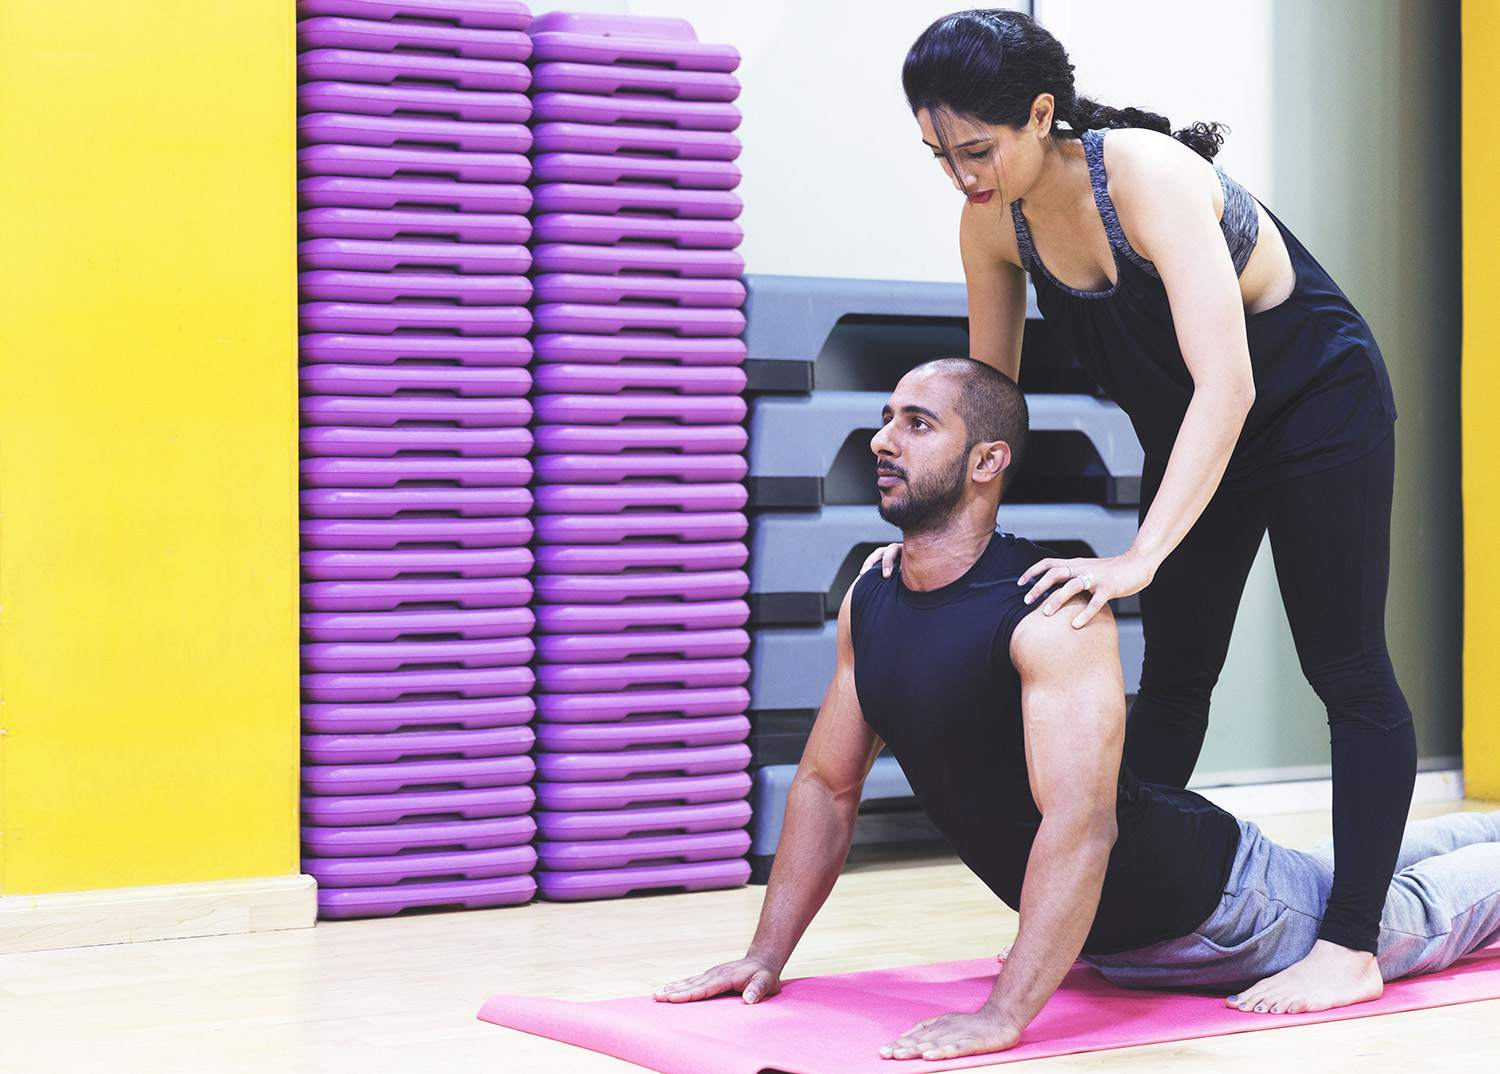 Personal Trainer Assisting Student With Cobra Pose in Her Yoga Class